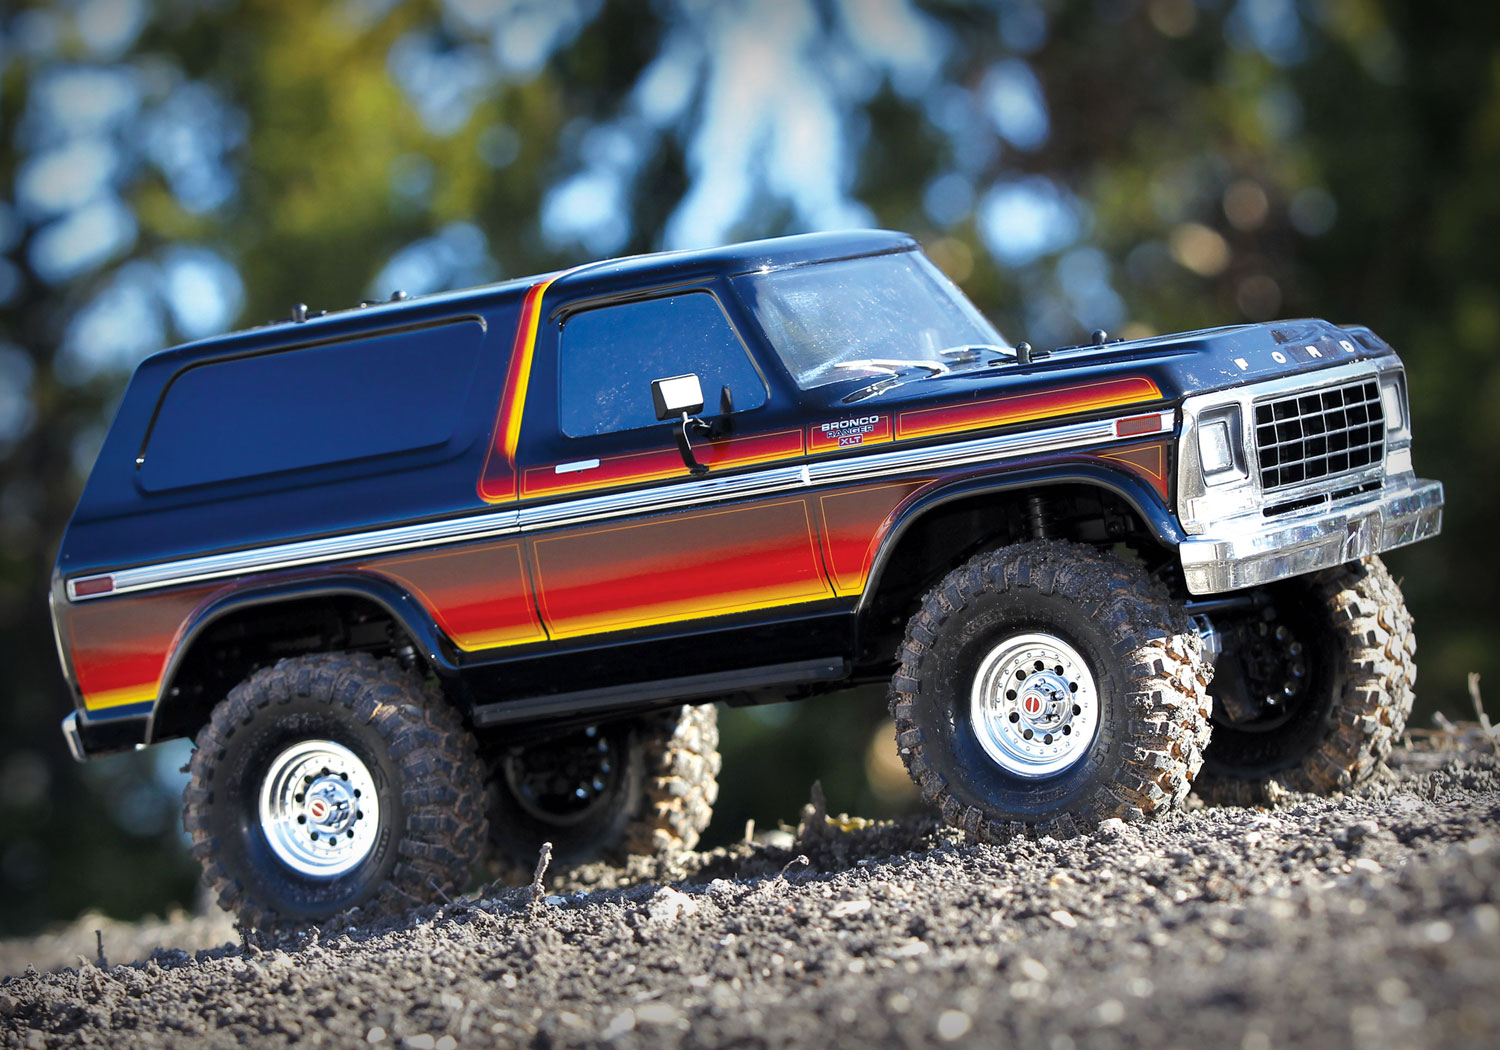 Traxxas Trx 4 Bronco Scale And Trail Crawler 4x4 Rc Truck